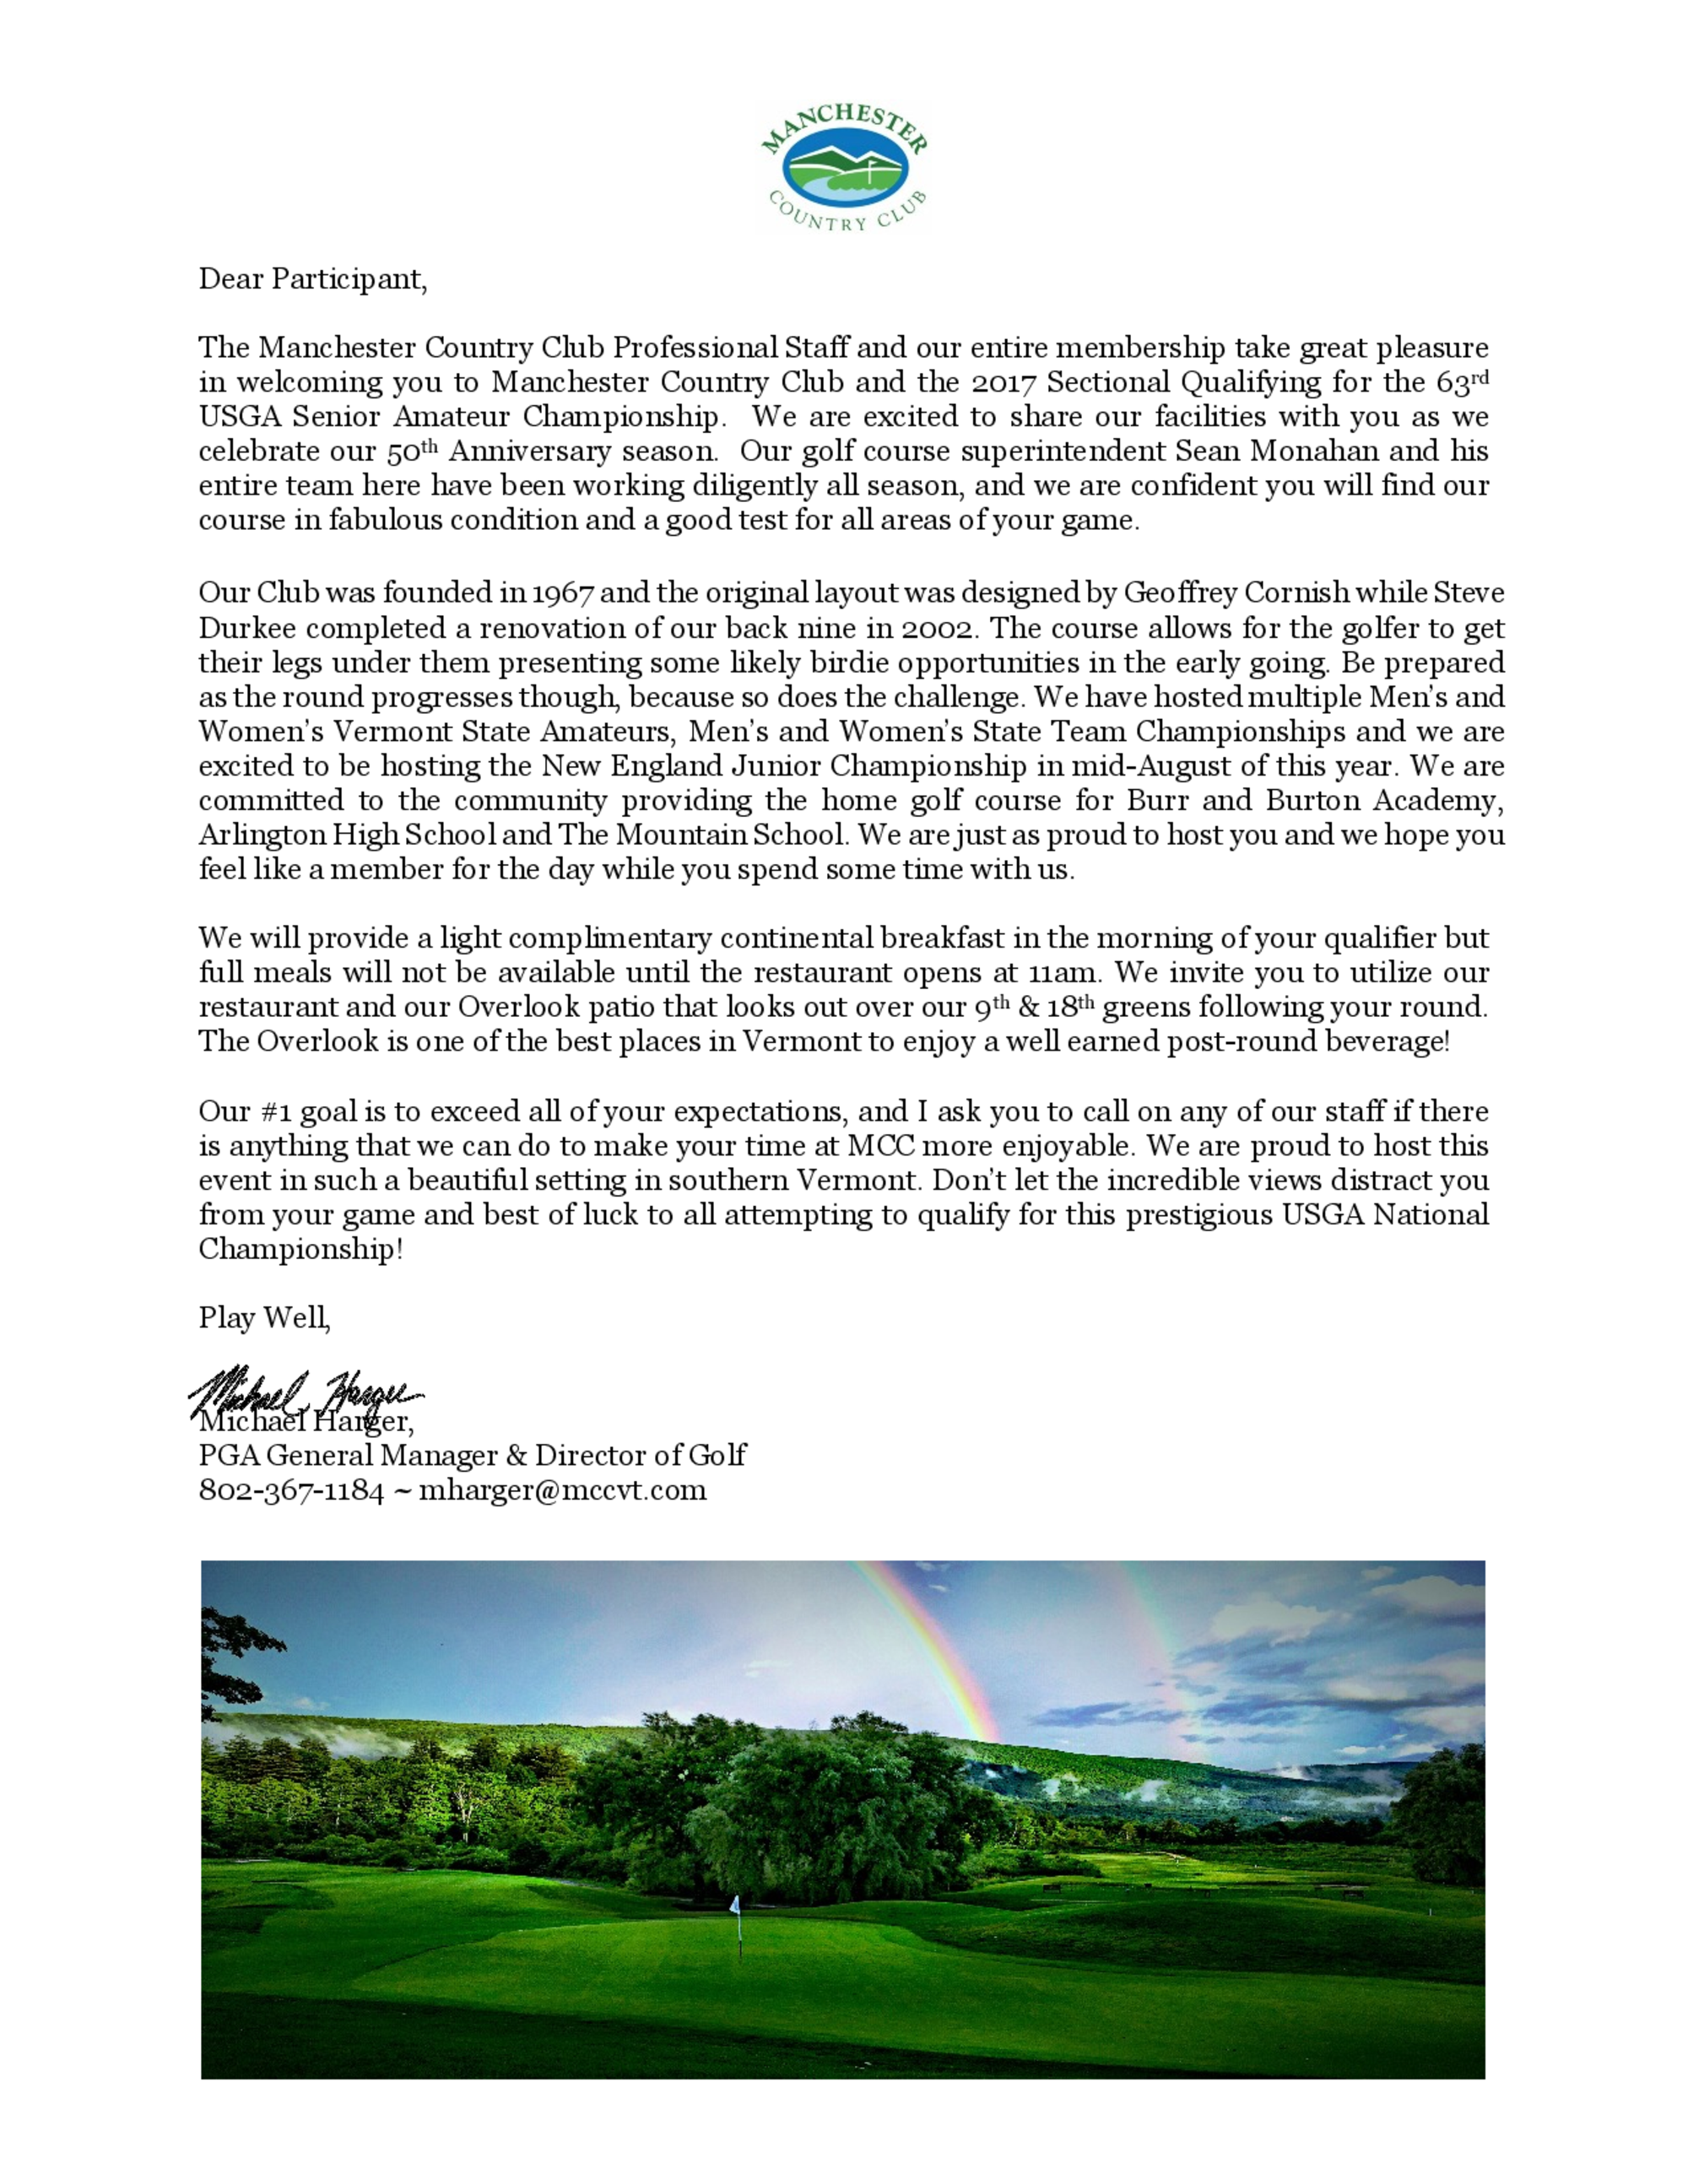 Senior am welcome letter 1